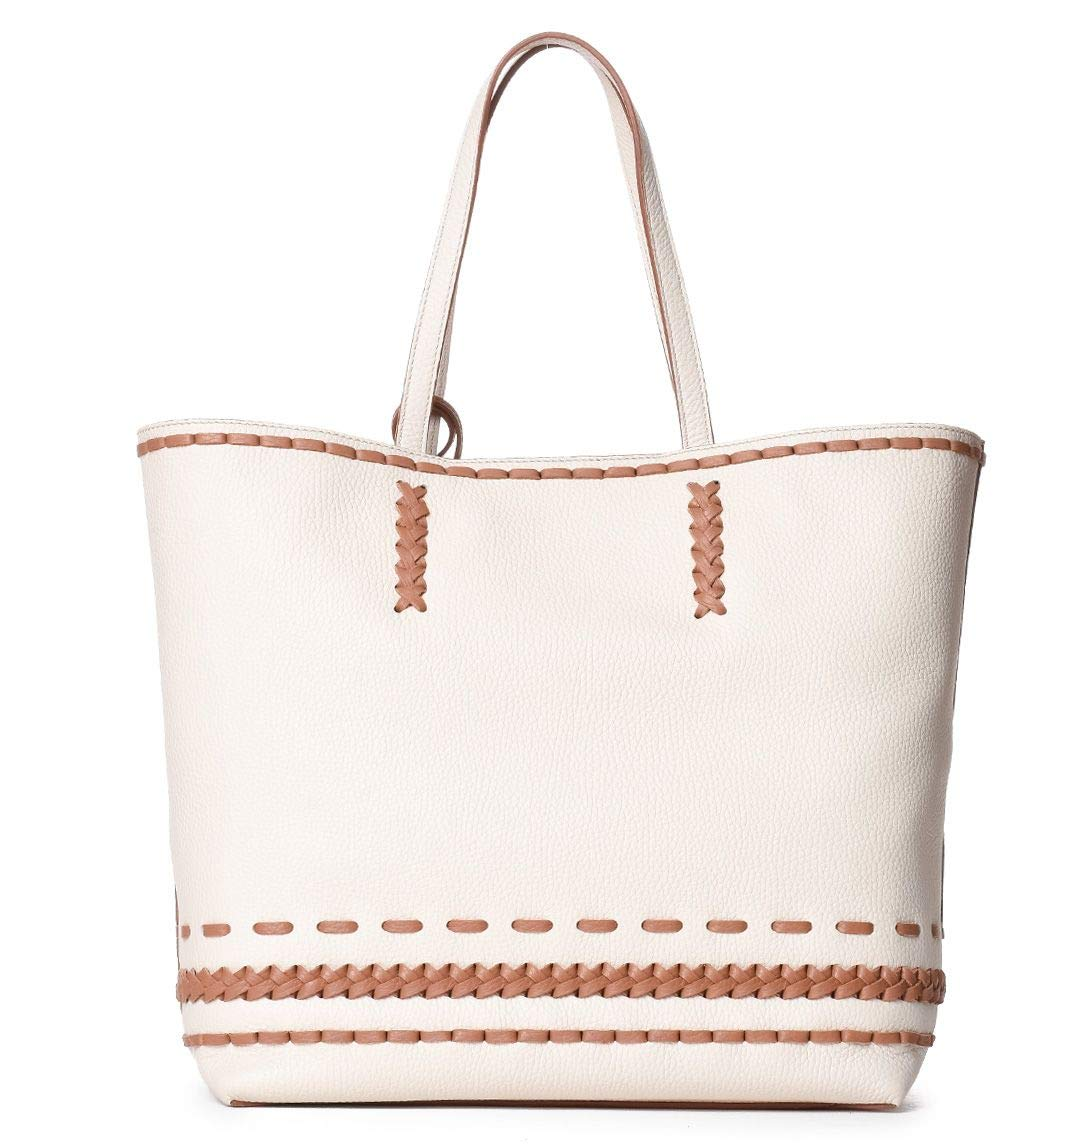 Tods Womens Xbwamwai300rib1z08 Beige Leather Tote